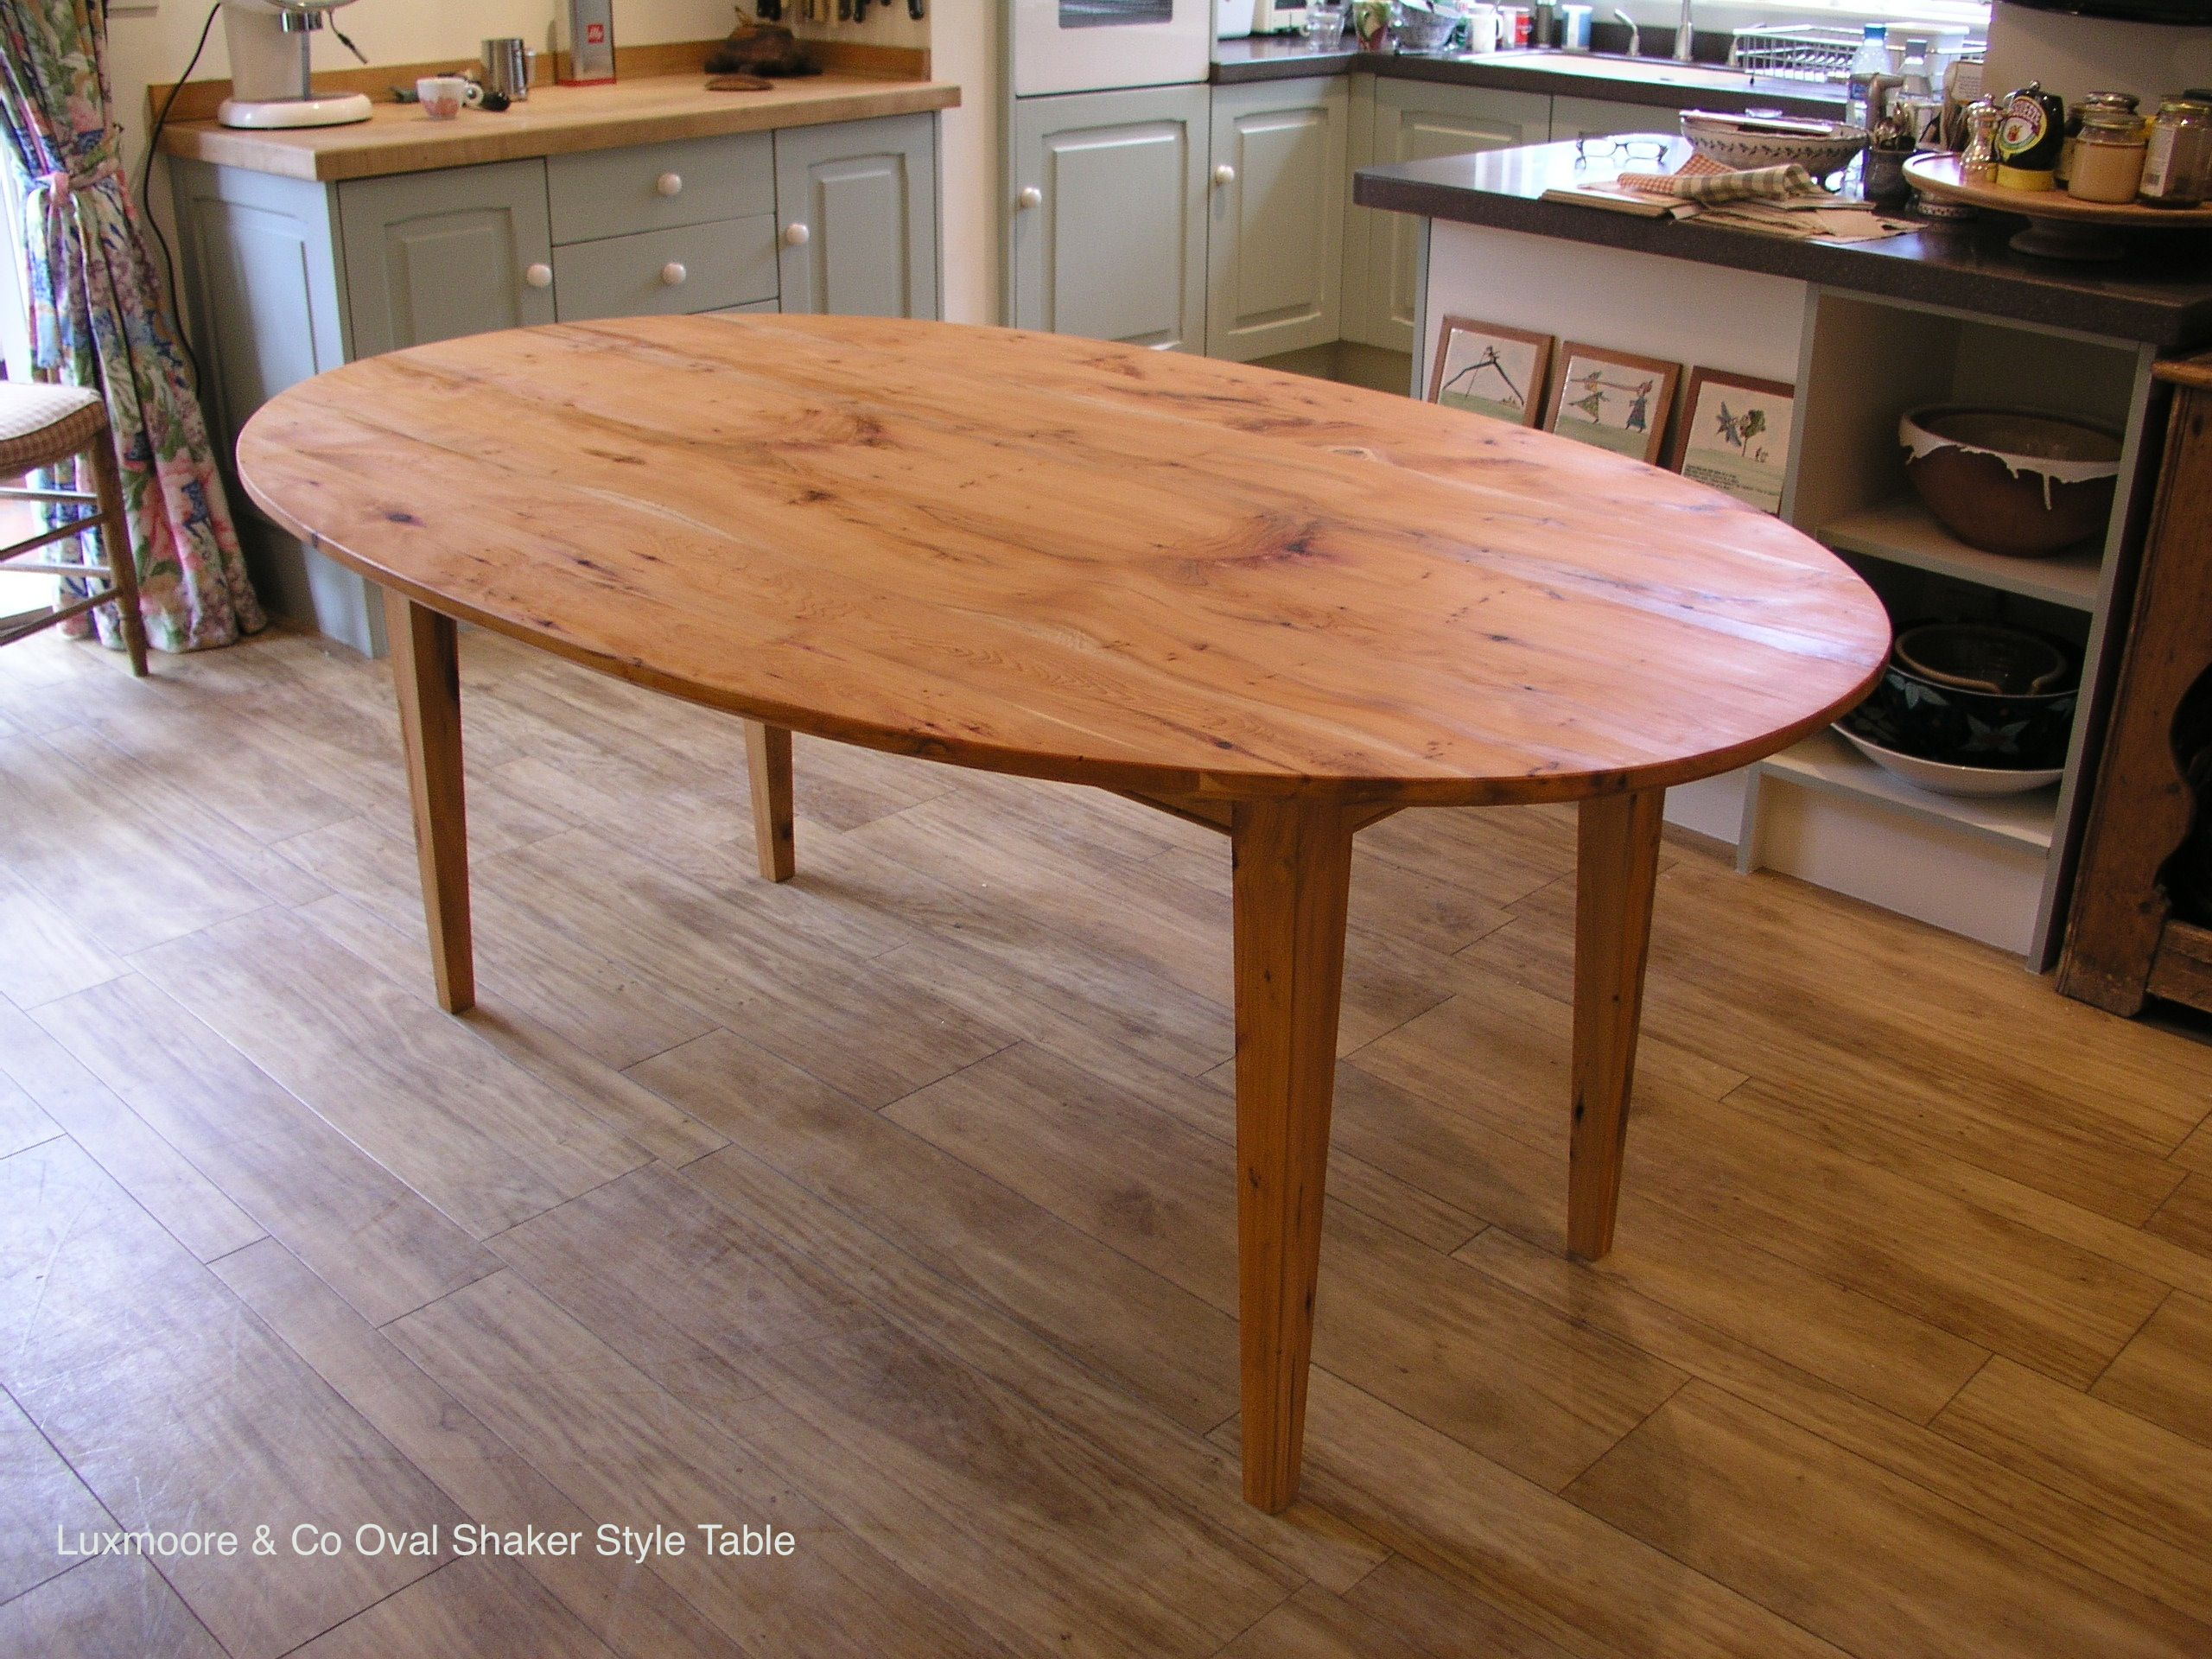 Oval shaker style dining kitchen table made from solid English